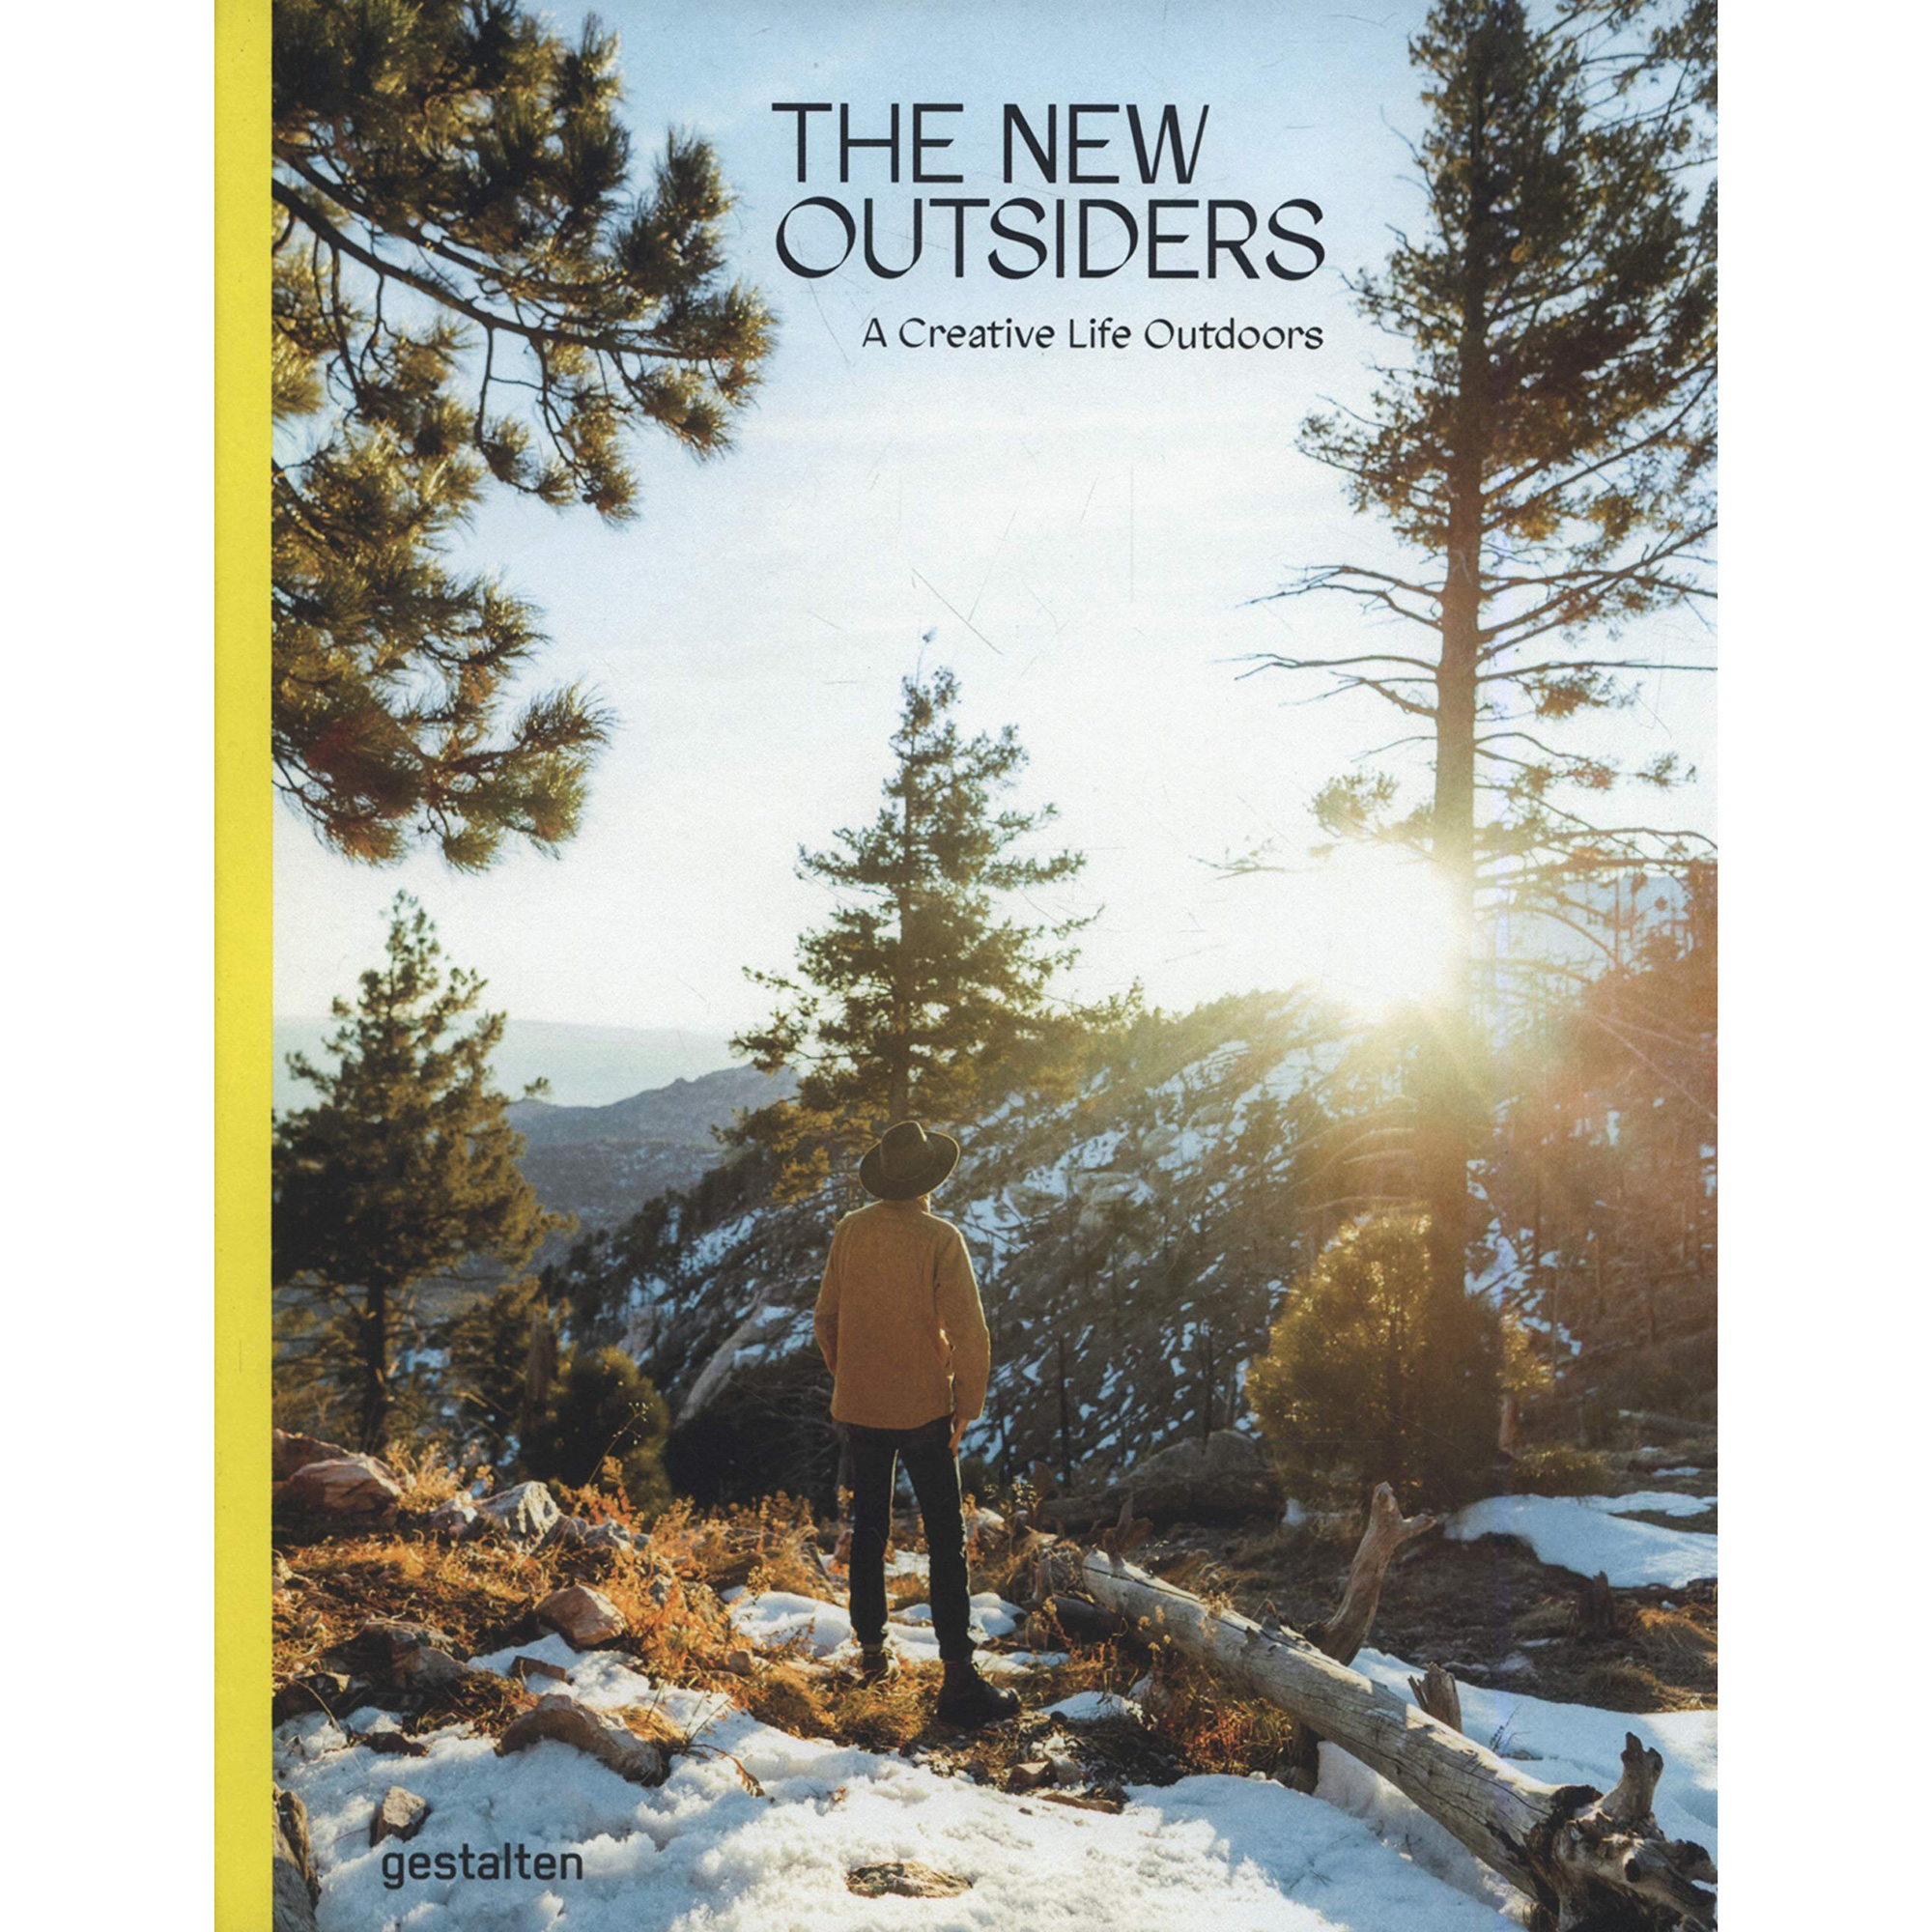 The New Outsiders - A Creative Life Outdoors